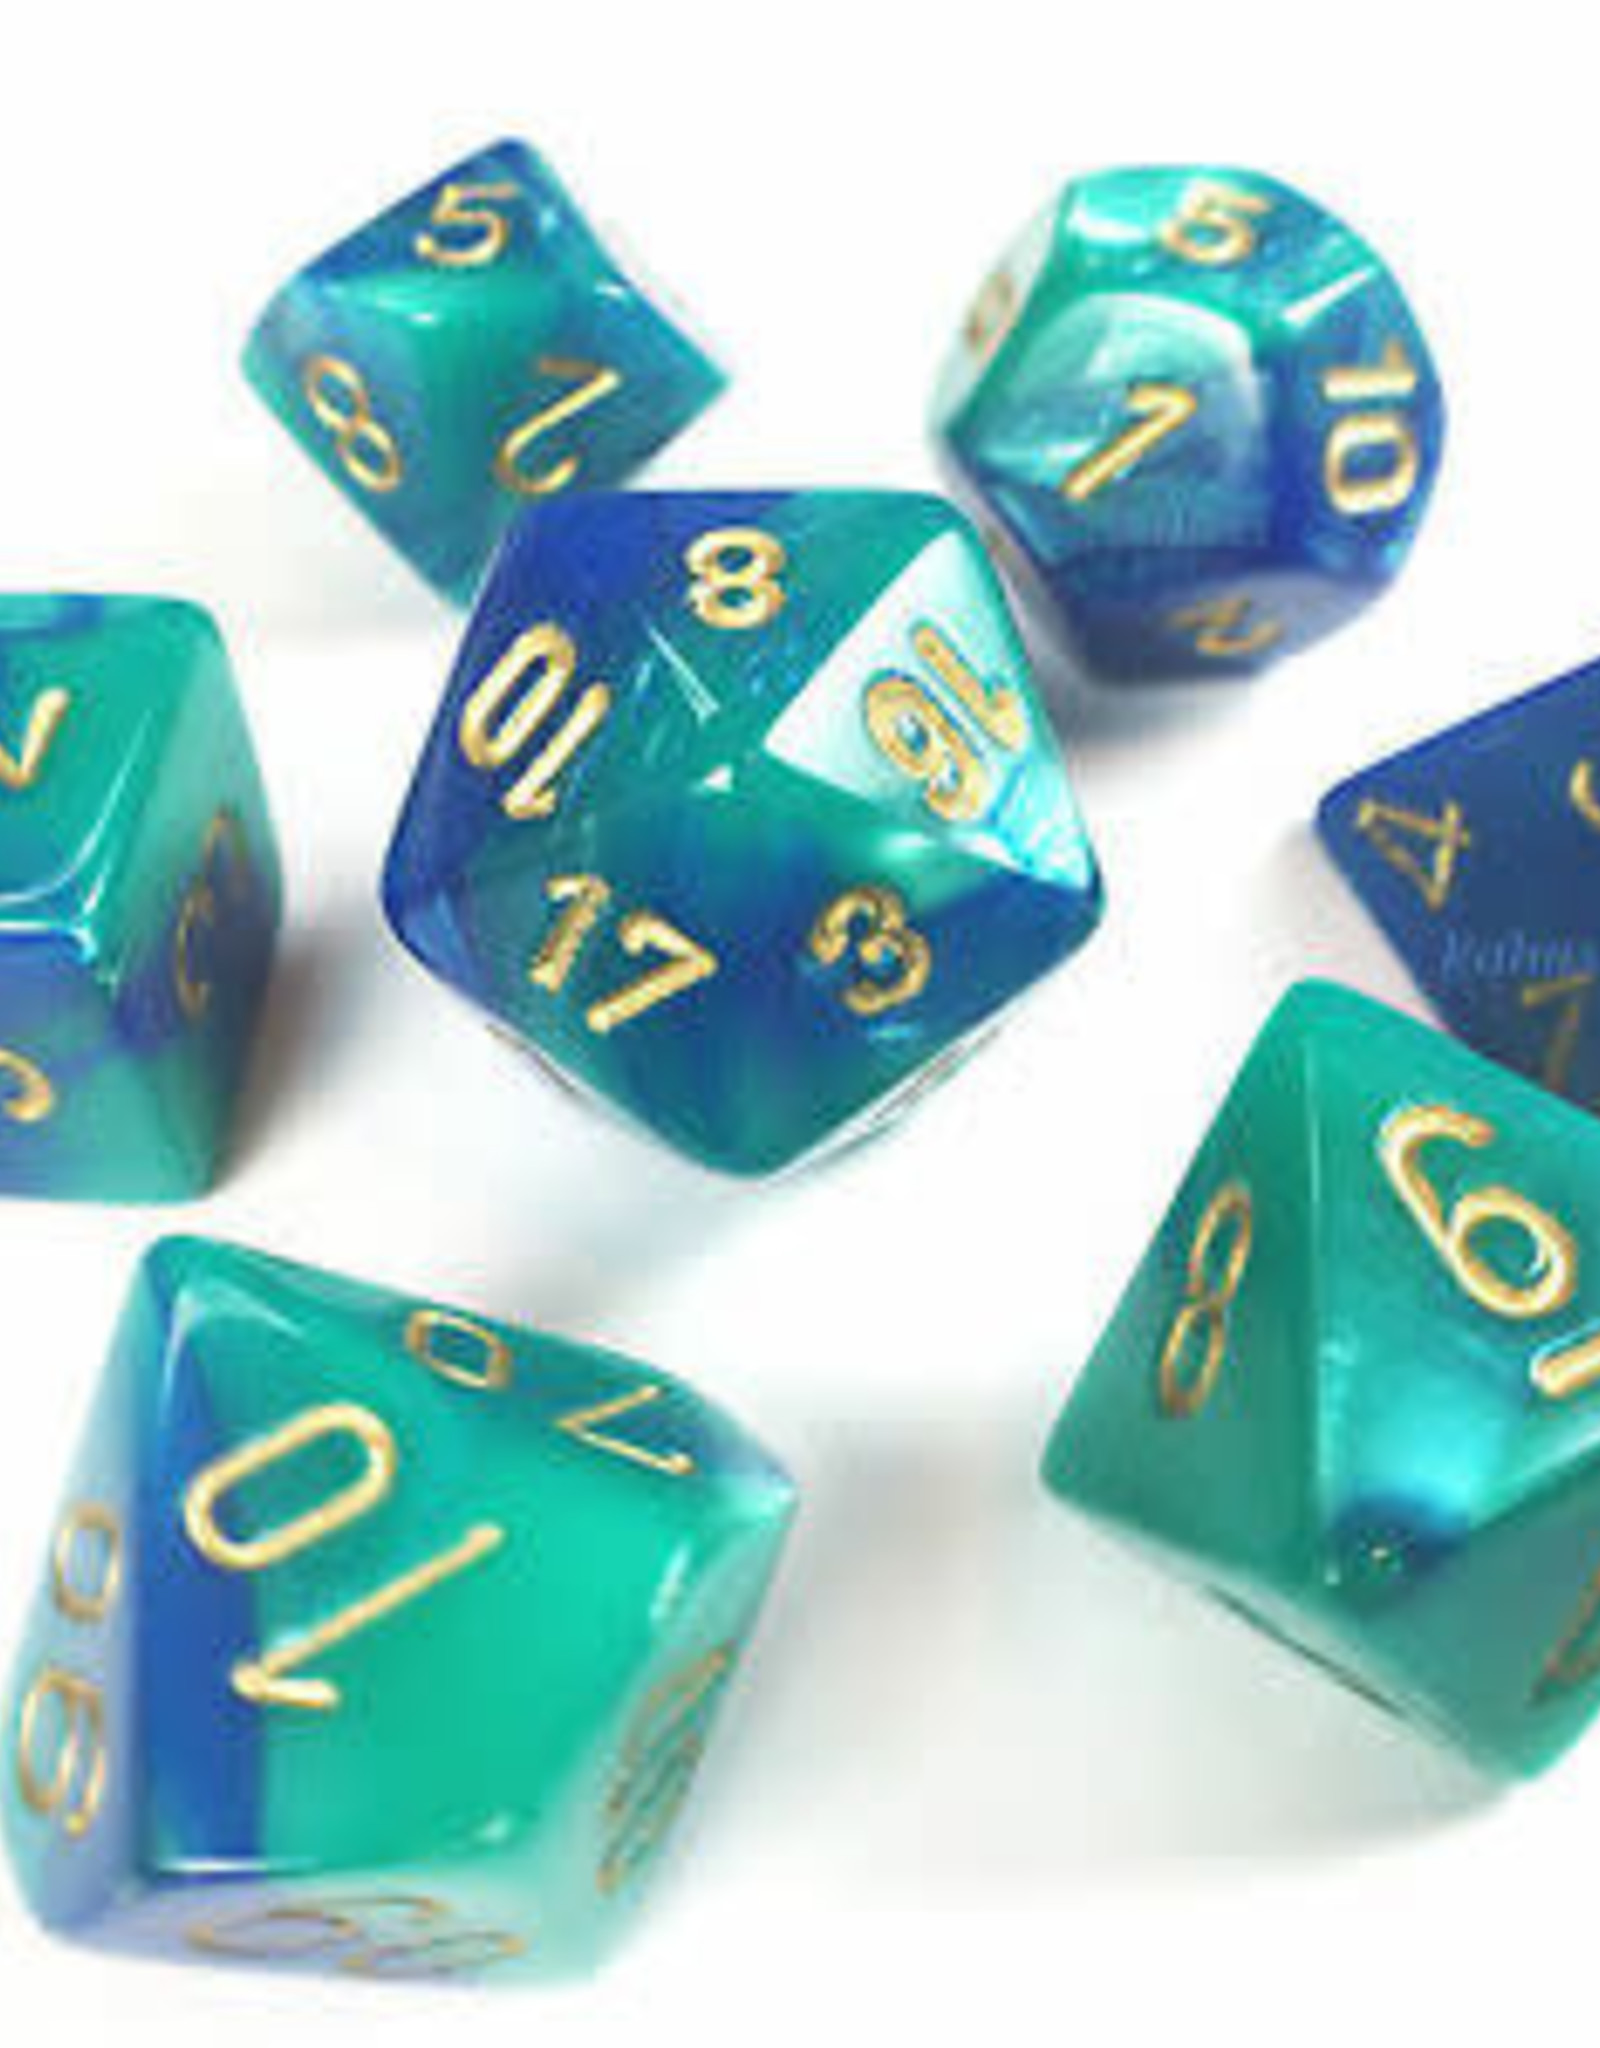 Chessex Blue-Teal/gold Gemini Poly 7 dice set